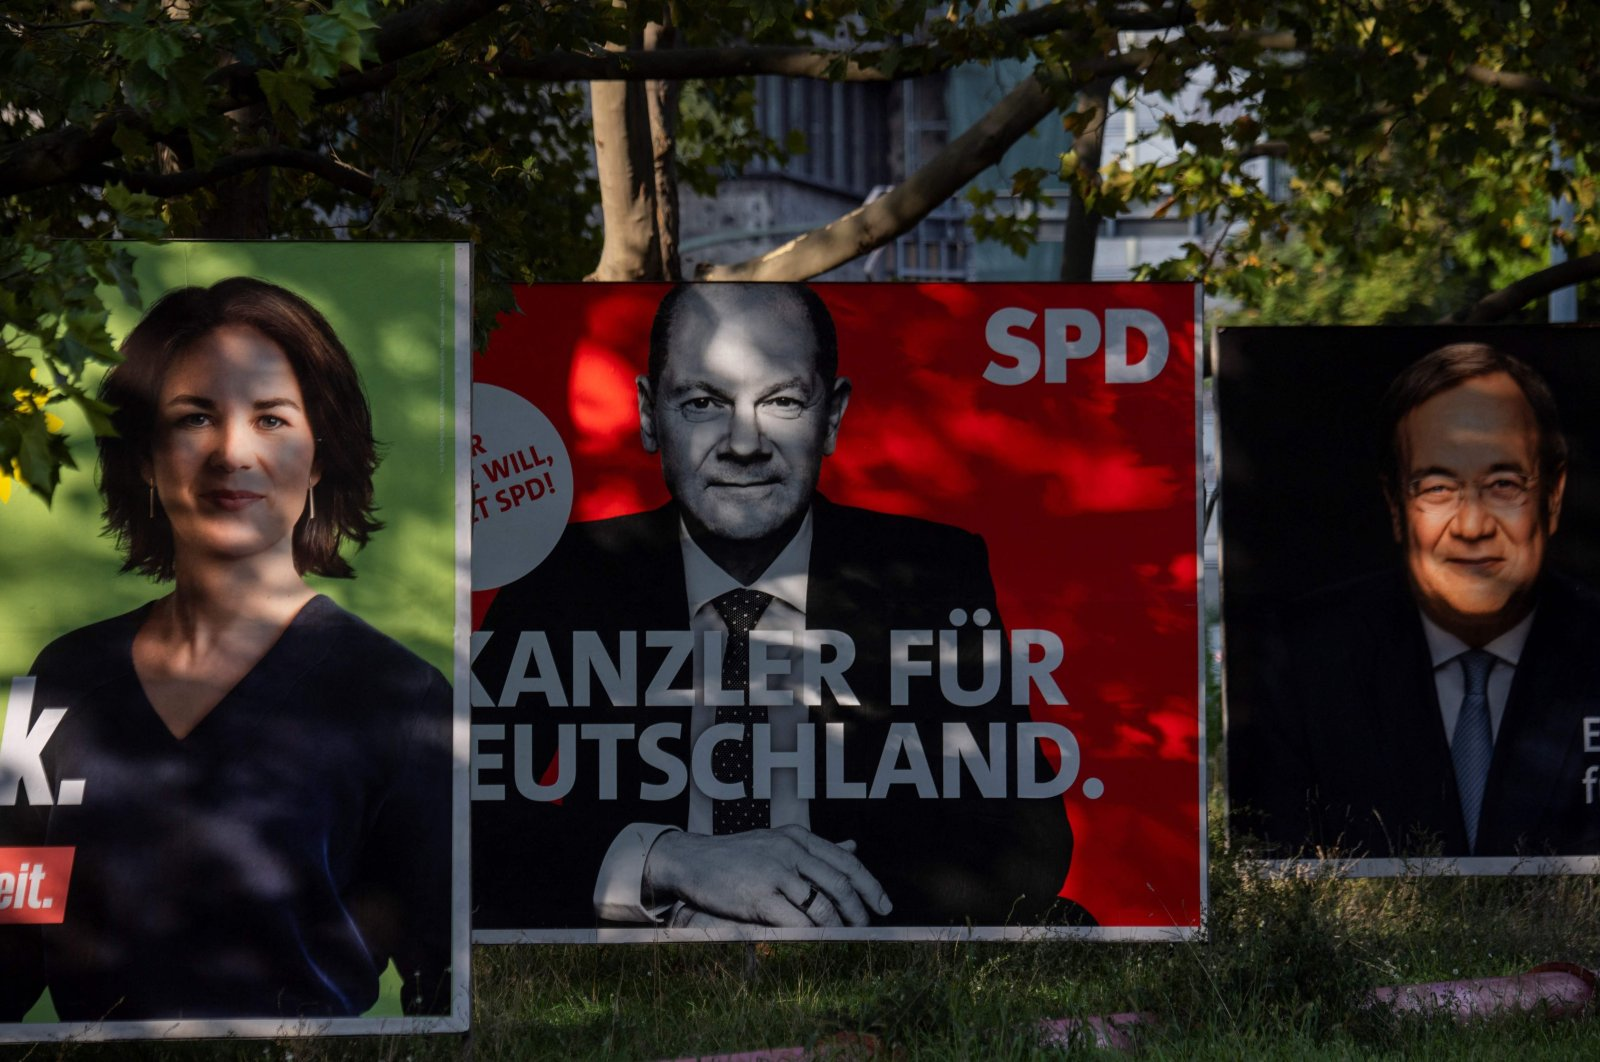 Billboards with election campaign posters showing the three chancellor candidates in the Sept. 26 federal election, (L-R) co-leader of Germany's Greens (Die Gruenen) Annalena Baerbock, German Finance Minister and Vice-Chancellor of the Social Democratic SPD Party Olaf Scholz and Christian Democratic Union CDU leader Armin Laschet are seen in Berlin, Germany, Sept. 25, 2021. (AFP Photo)